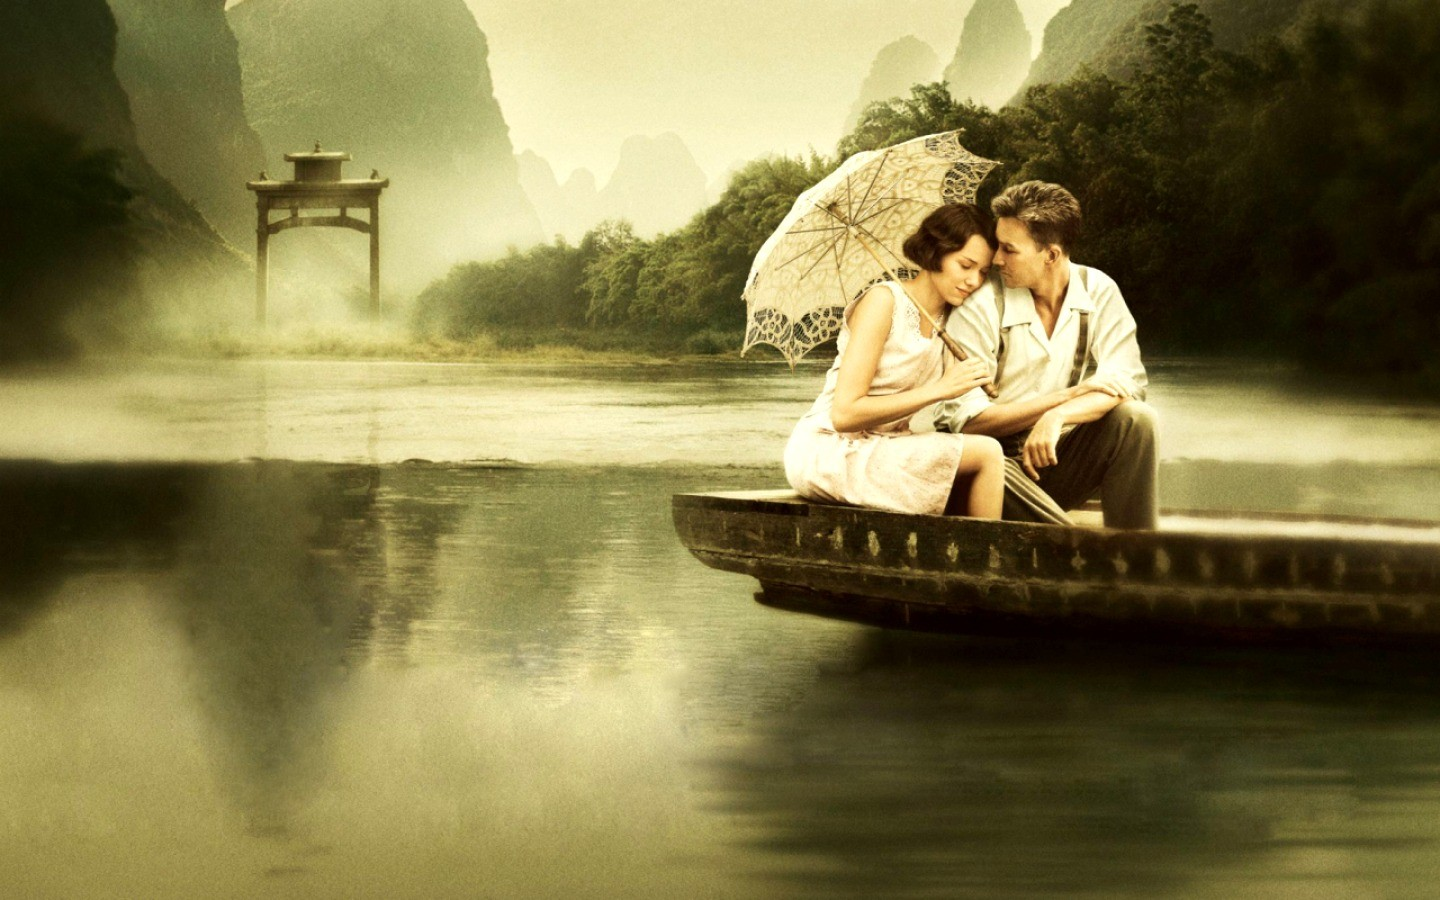 Wallpaper download cute lovers - Romantic Couple Love Wallpapers For Desktop